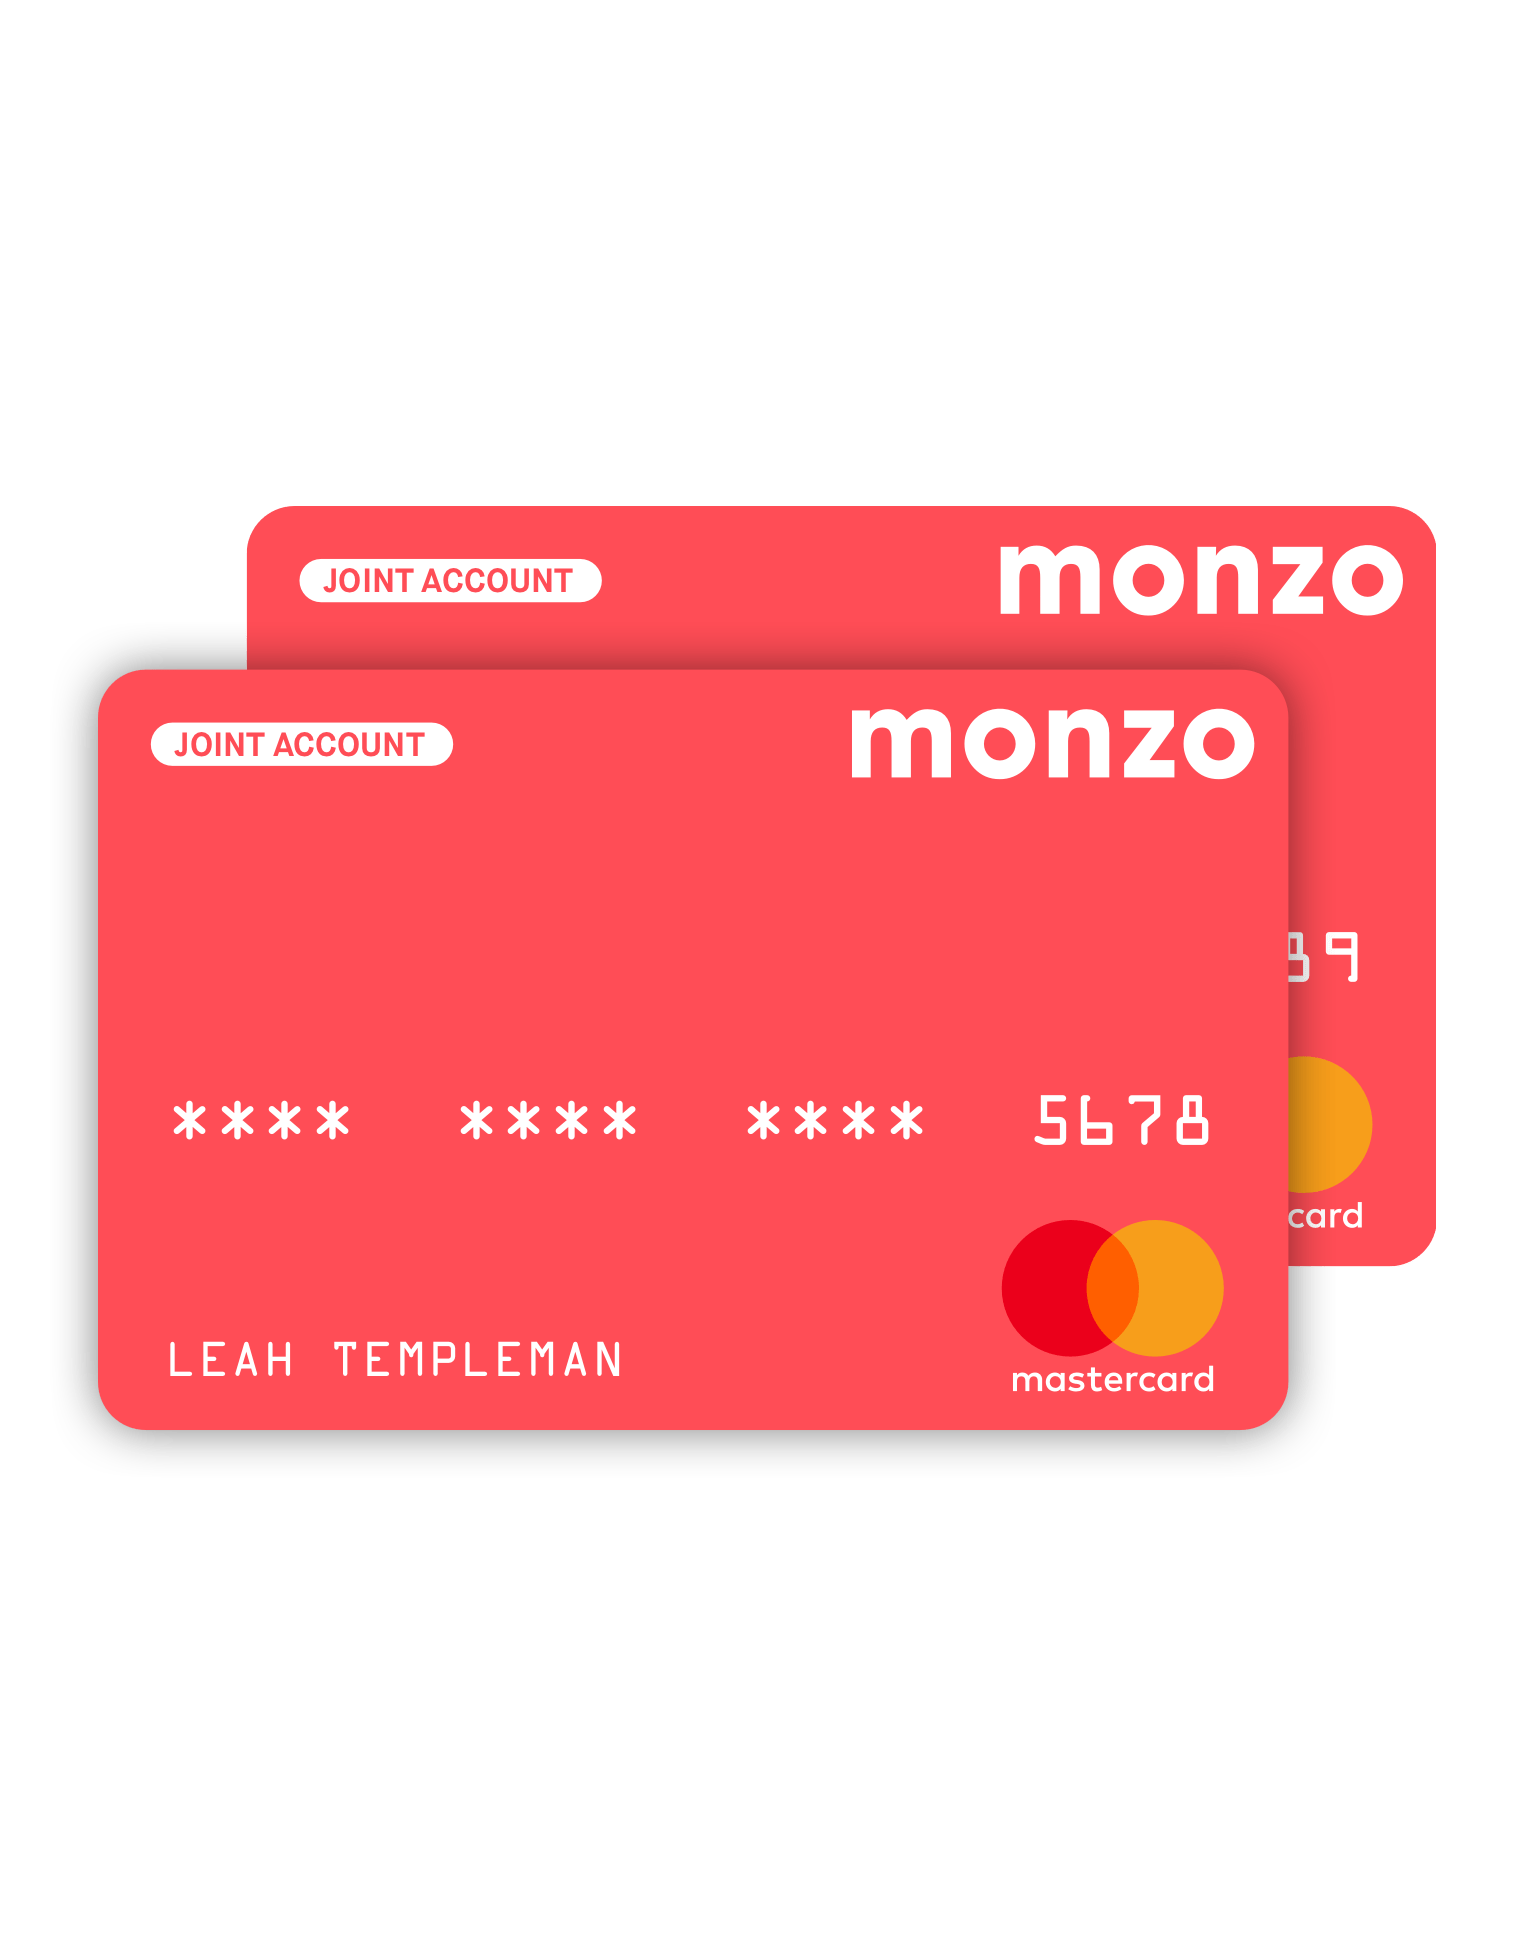 Monzo Joint Account Open One Today In Minutes